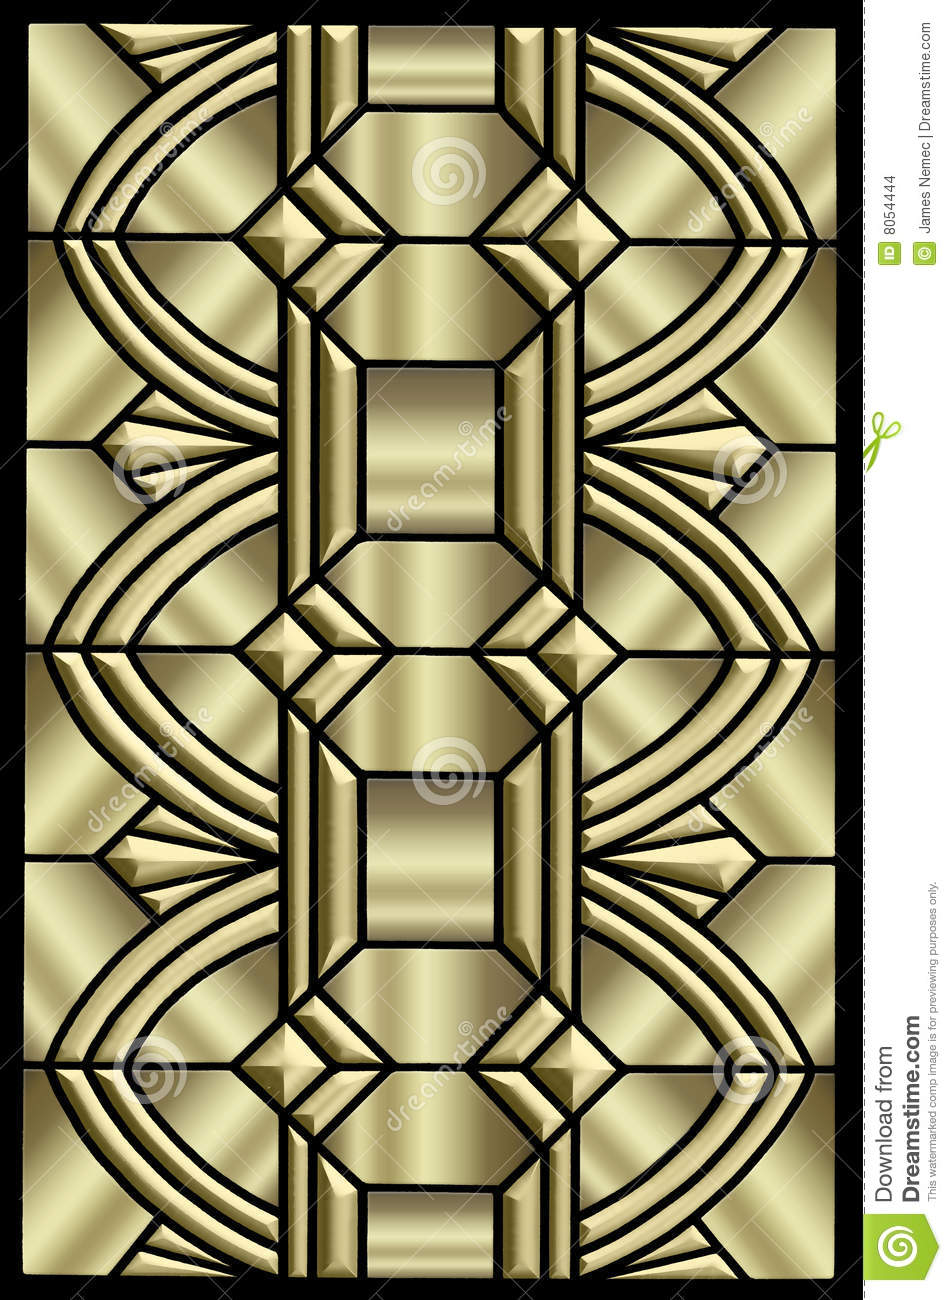 Metallic art deco design stock images image 8054444 for Design art deco